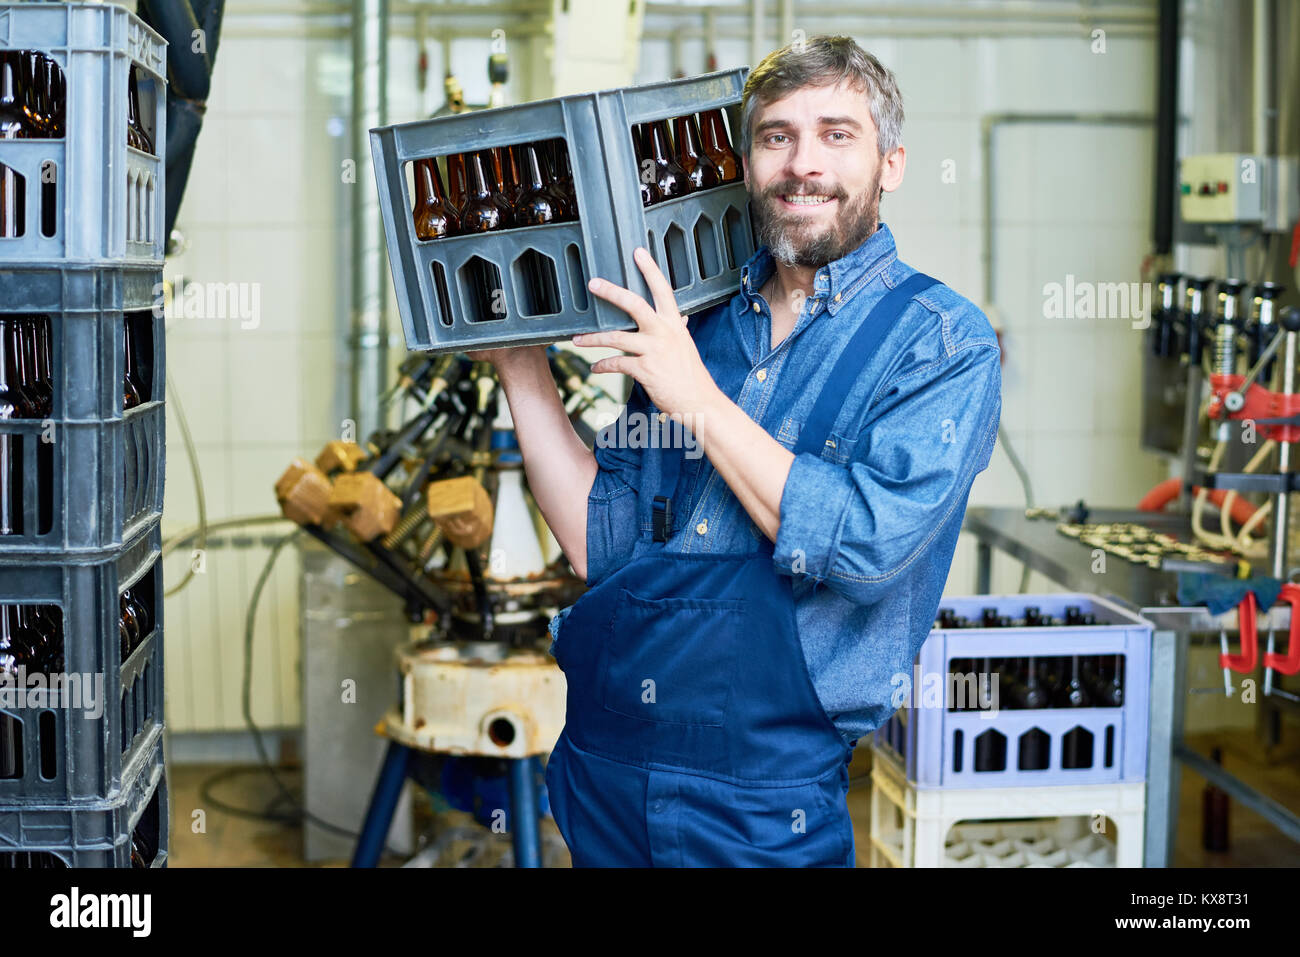 Bearded Worker Carrying Beer Bottle Crate - Stock Image